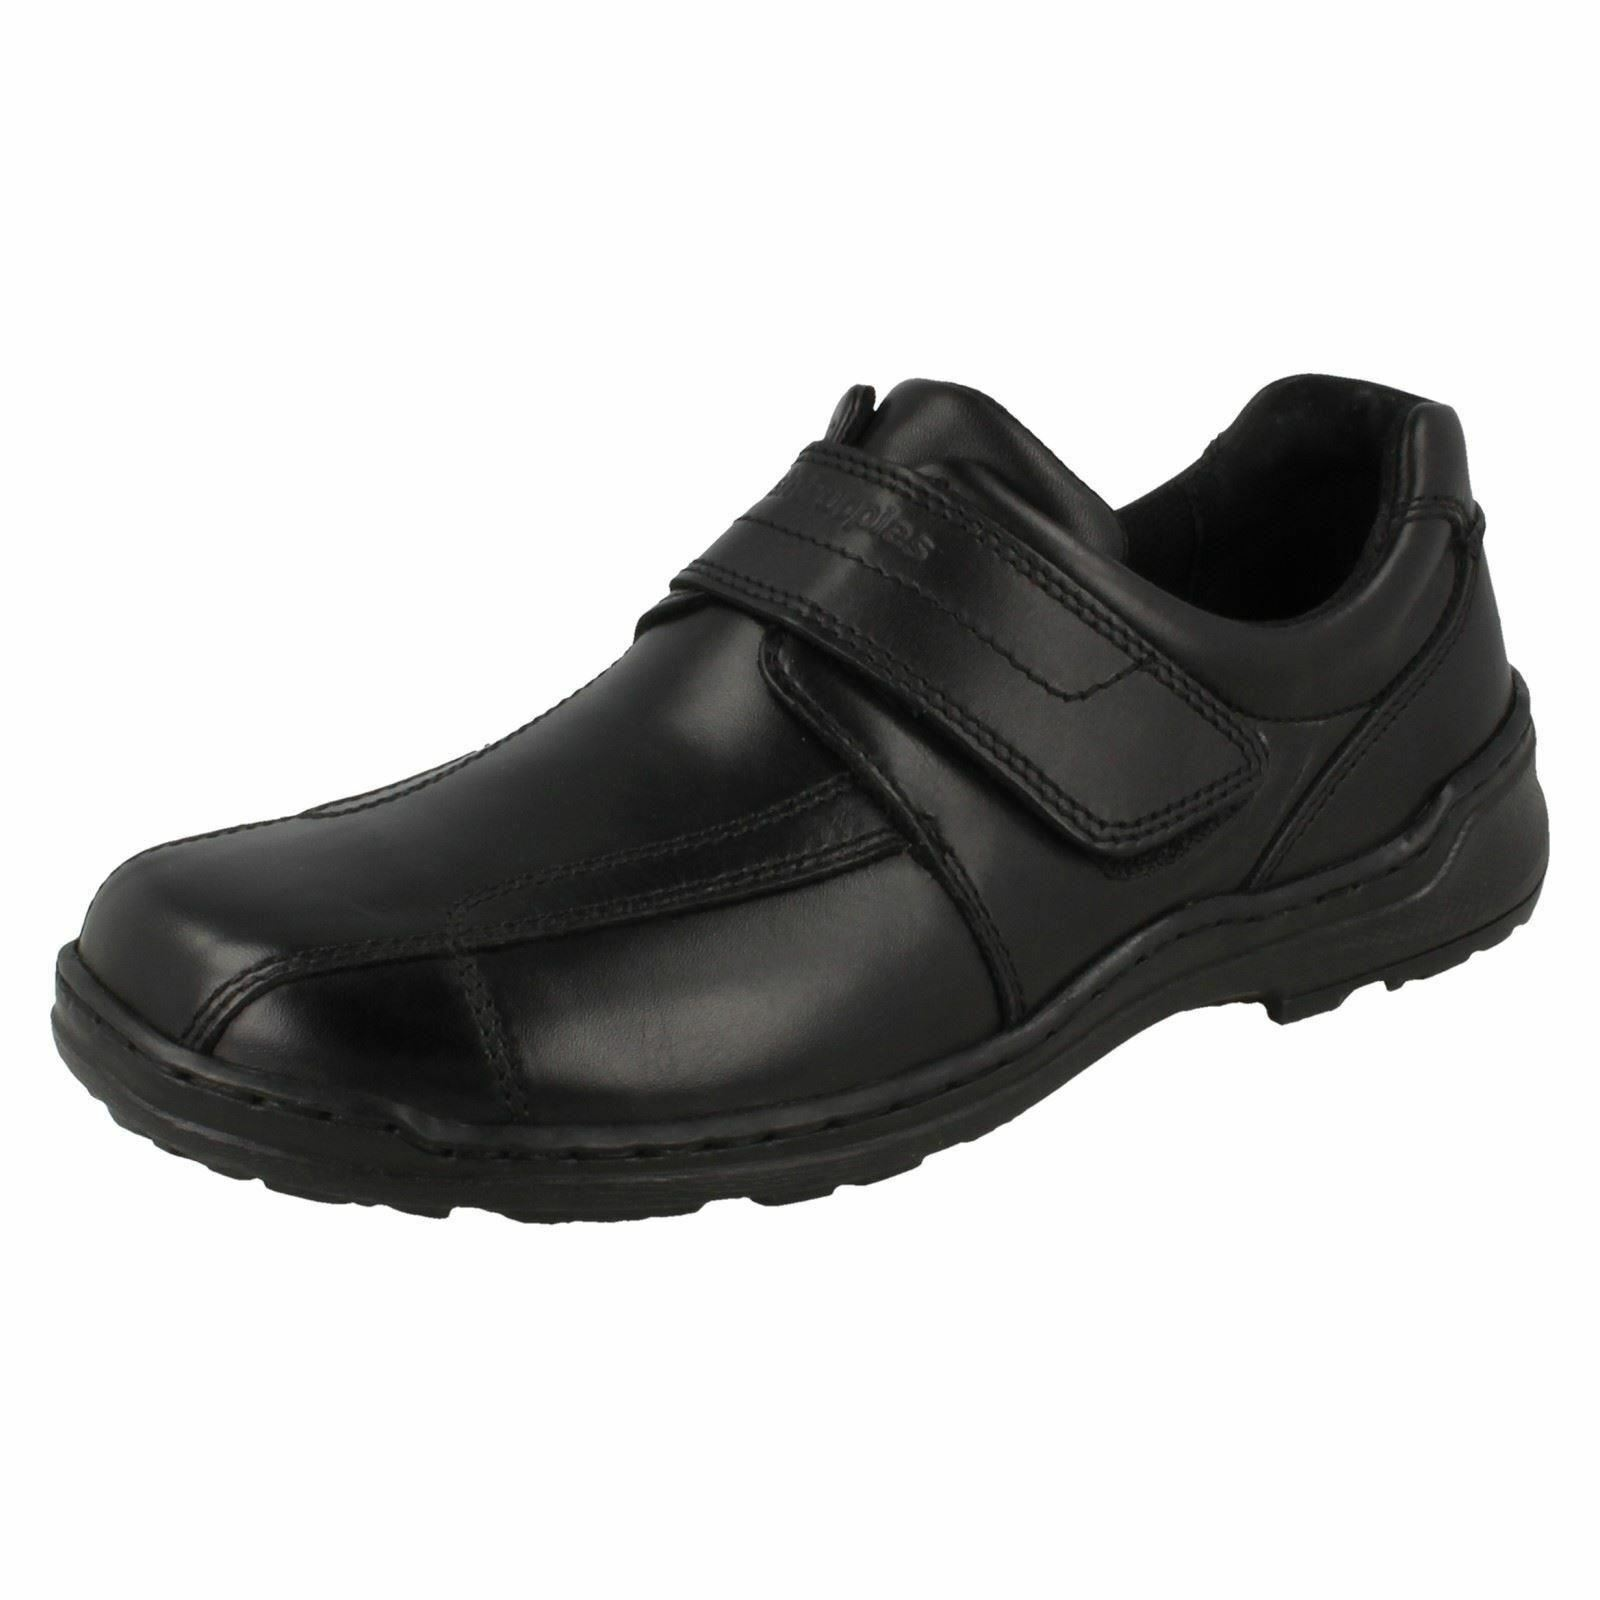 Mens GROUNDS HUSH black leather shoes by HUSH GROUNDS PUPPIES Retail 617cf4